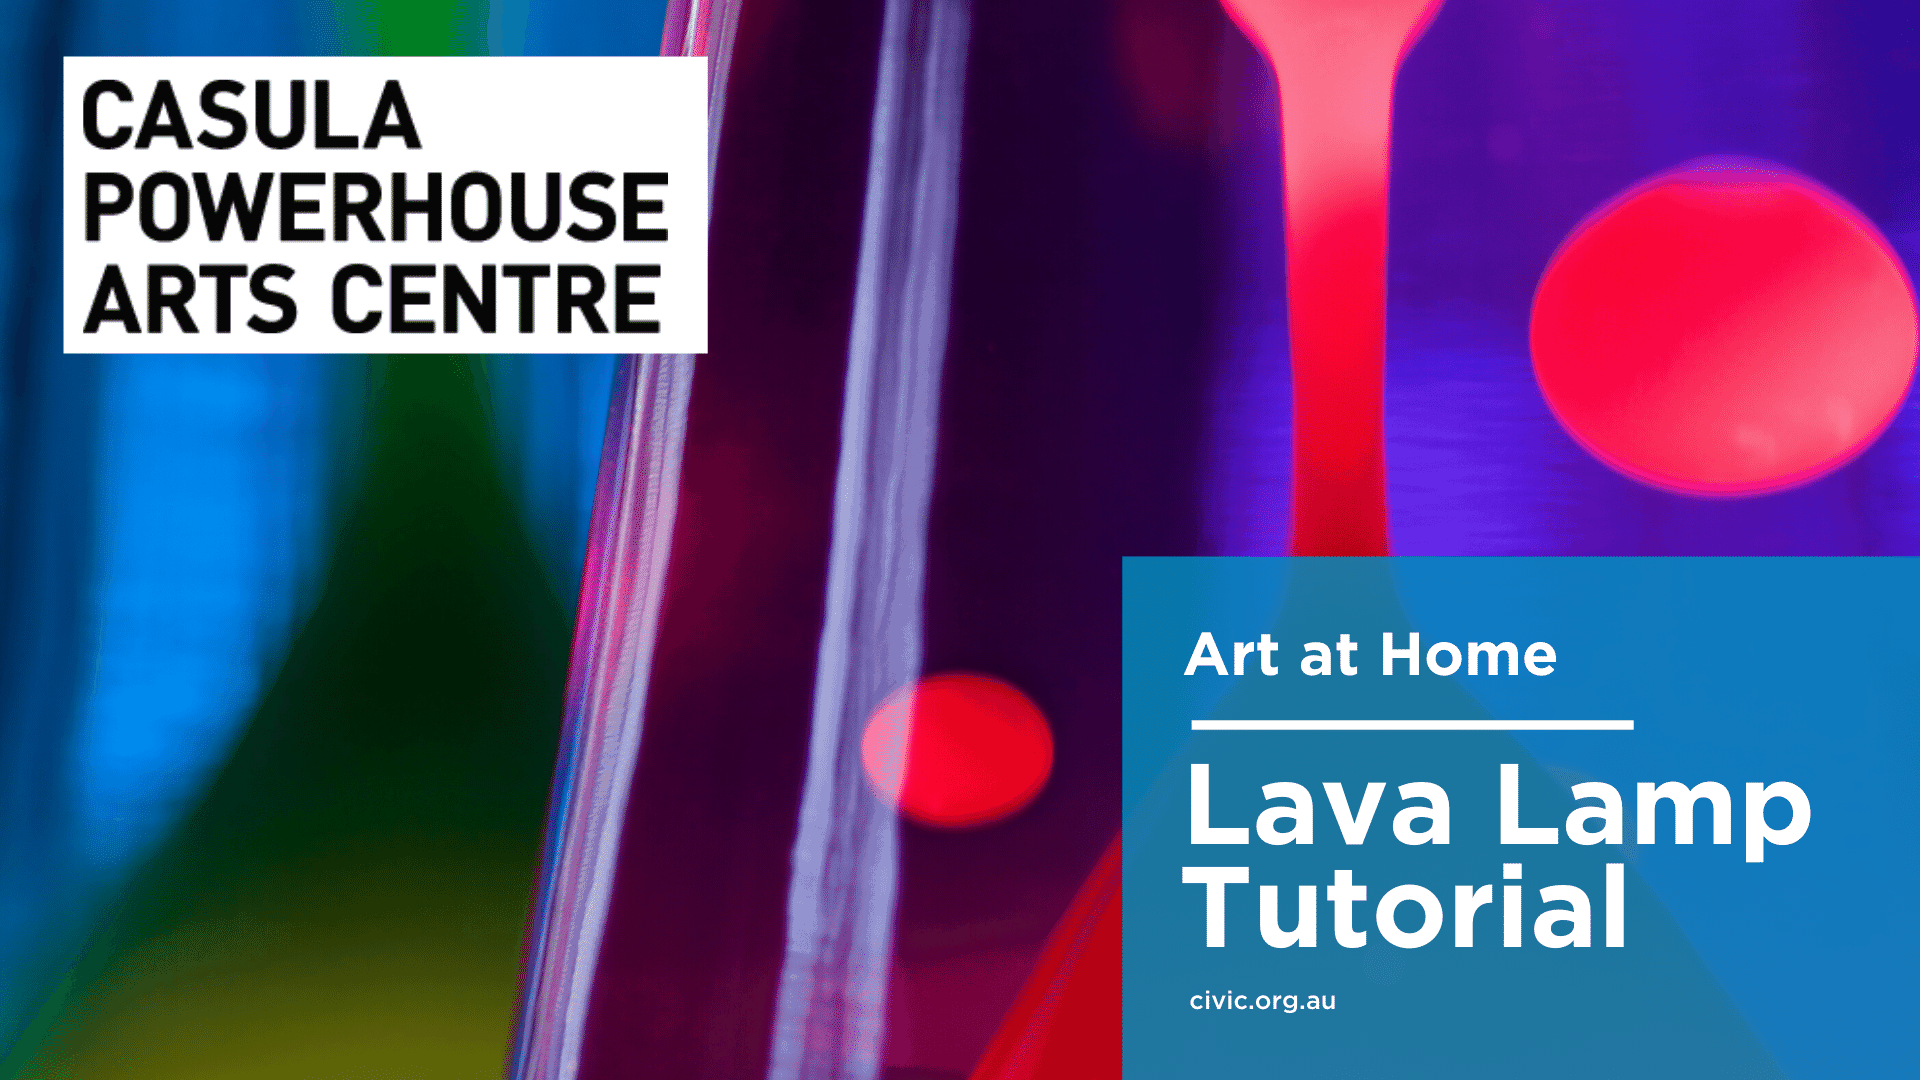 lava lamp at home tutorial banner